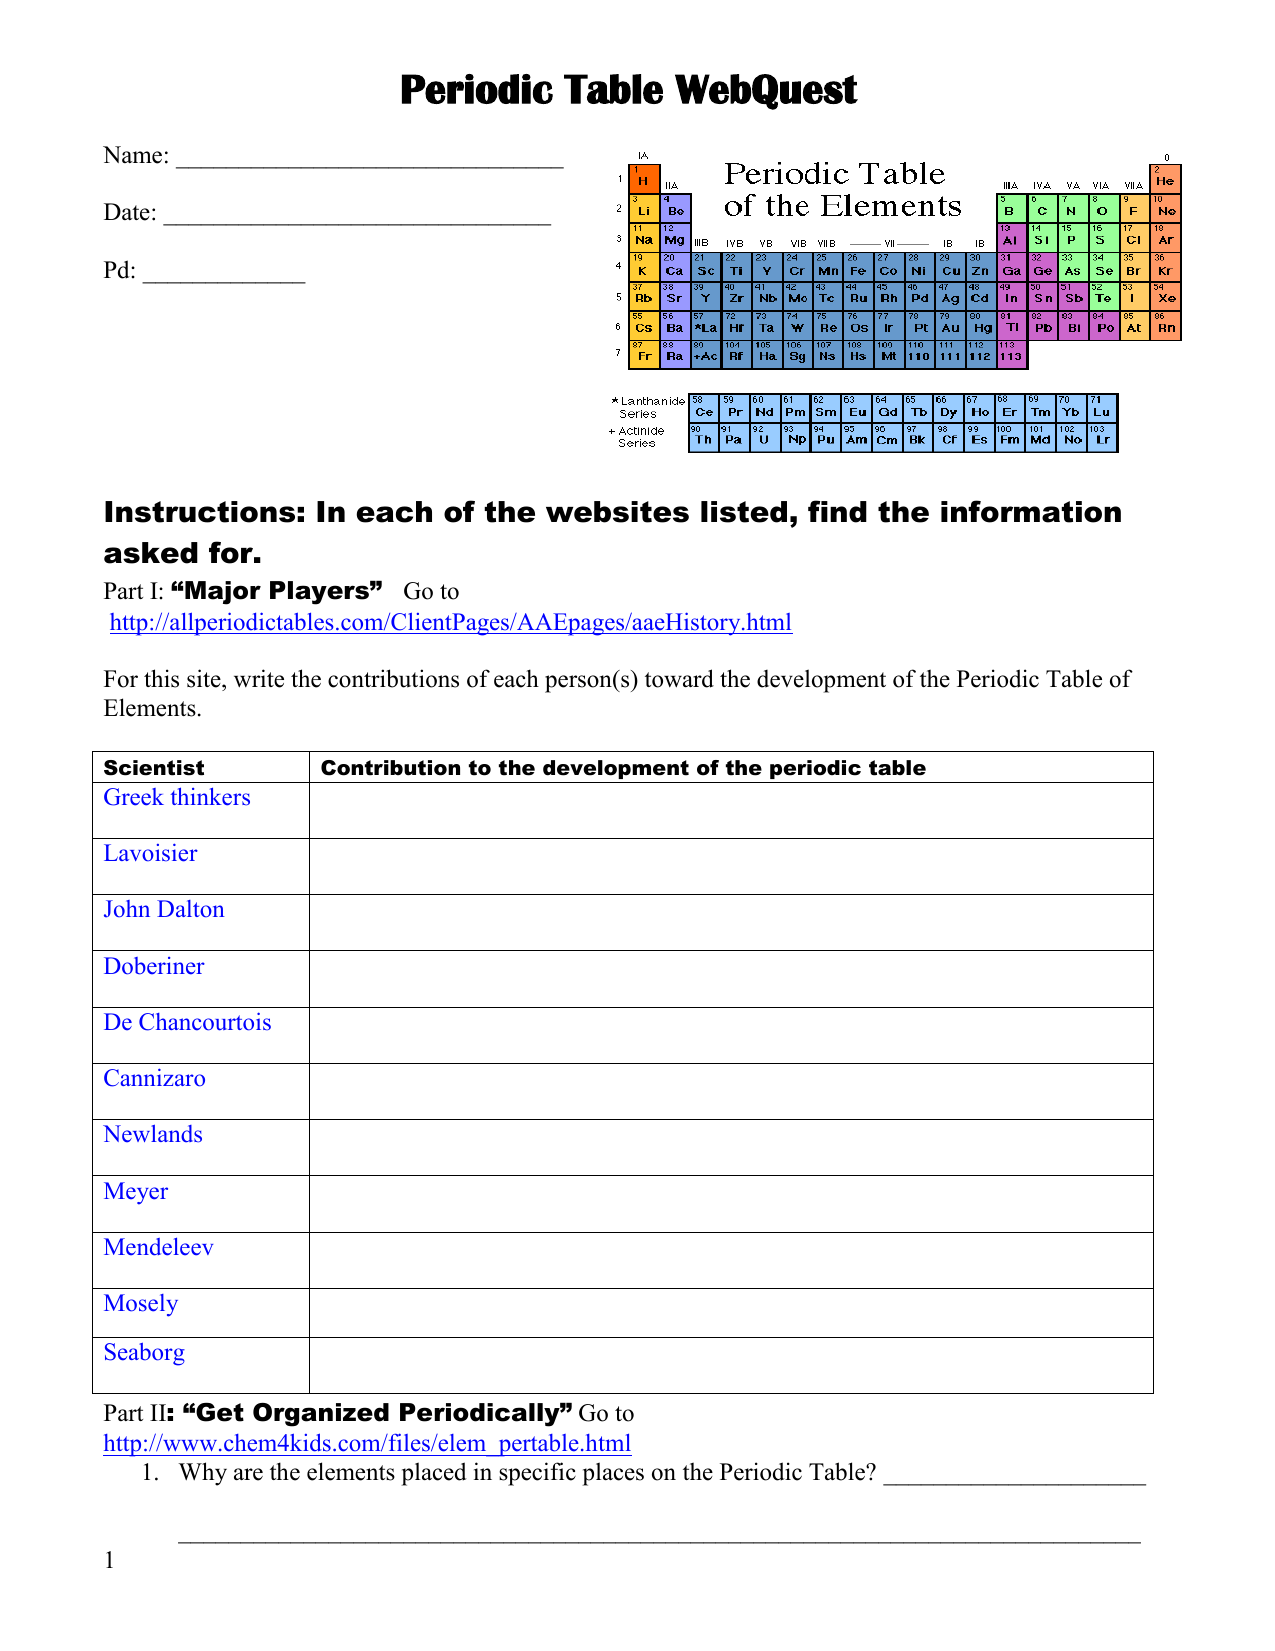 Periodic Table Webquest Answer Key Part 1